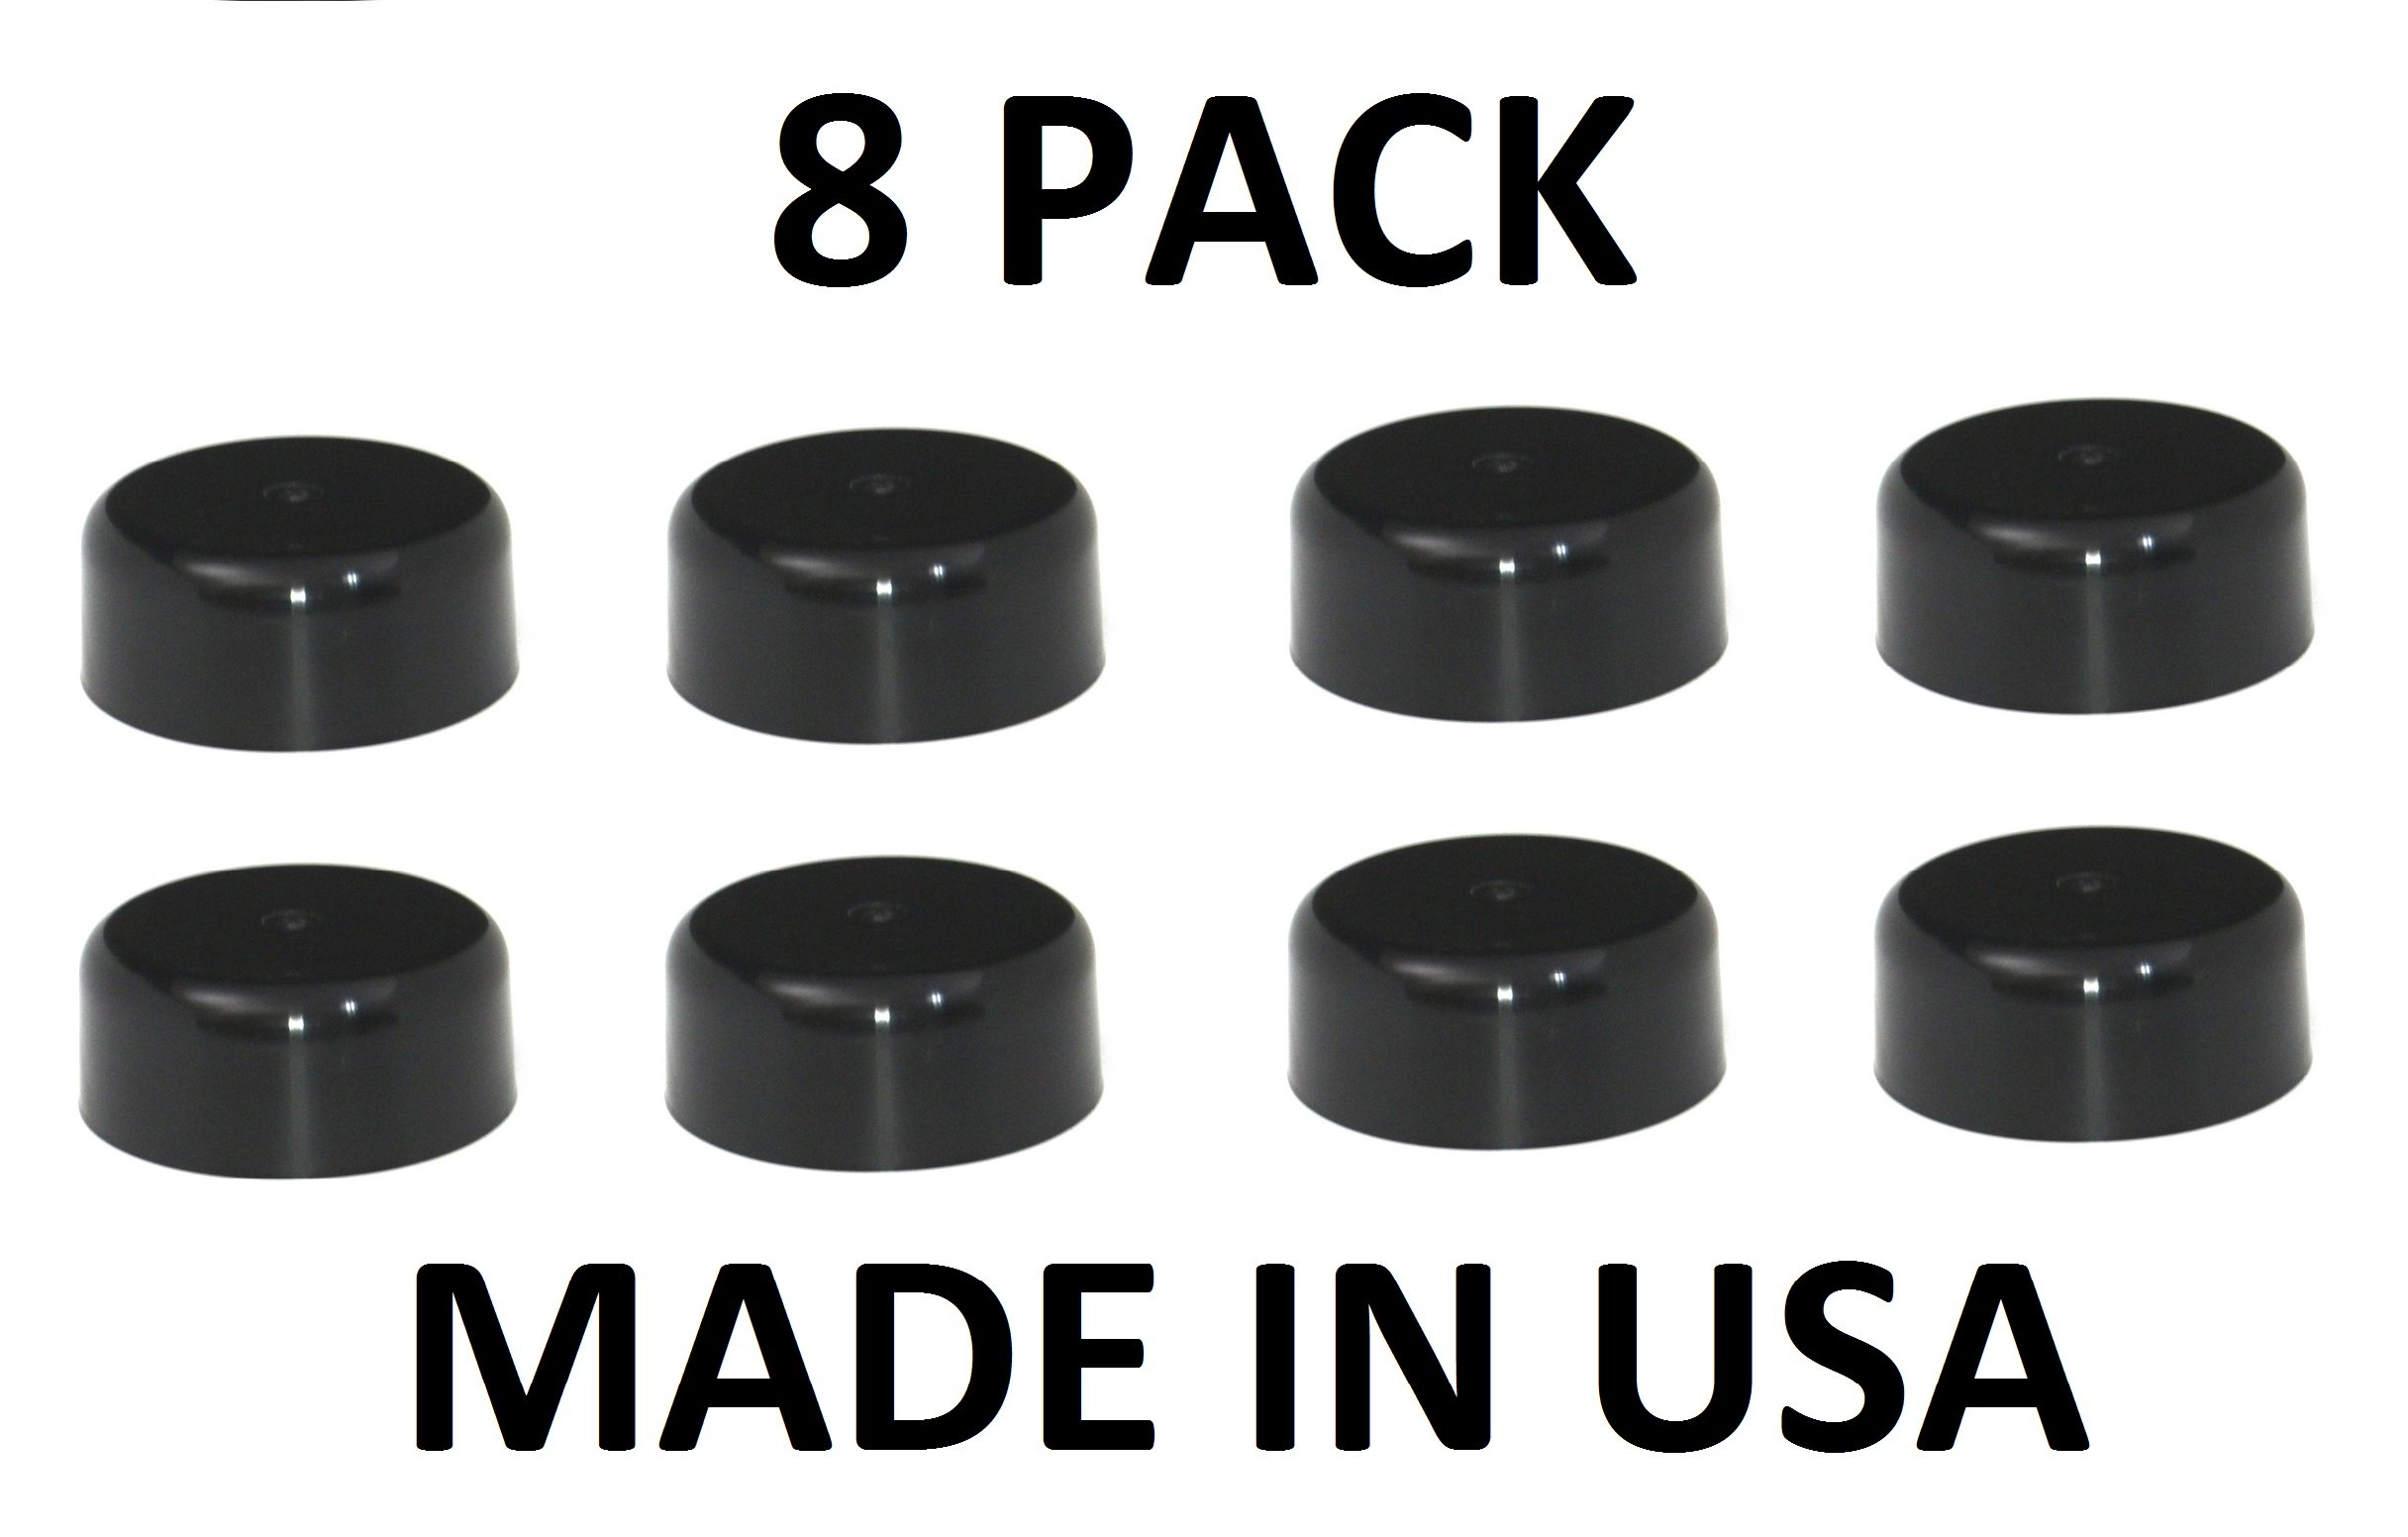 New Fence Post Plastic Caps Black 8 Pack of 3.5 (3 1/2) Pressure Treated Wood Made In USA